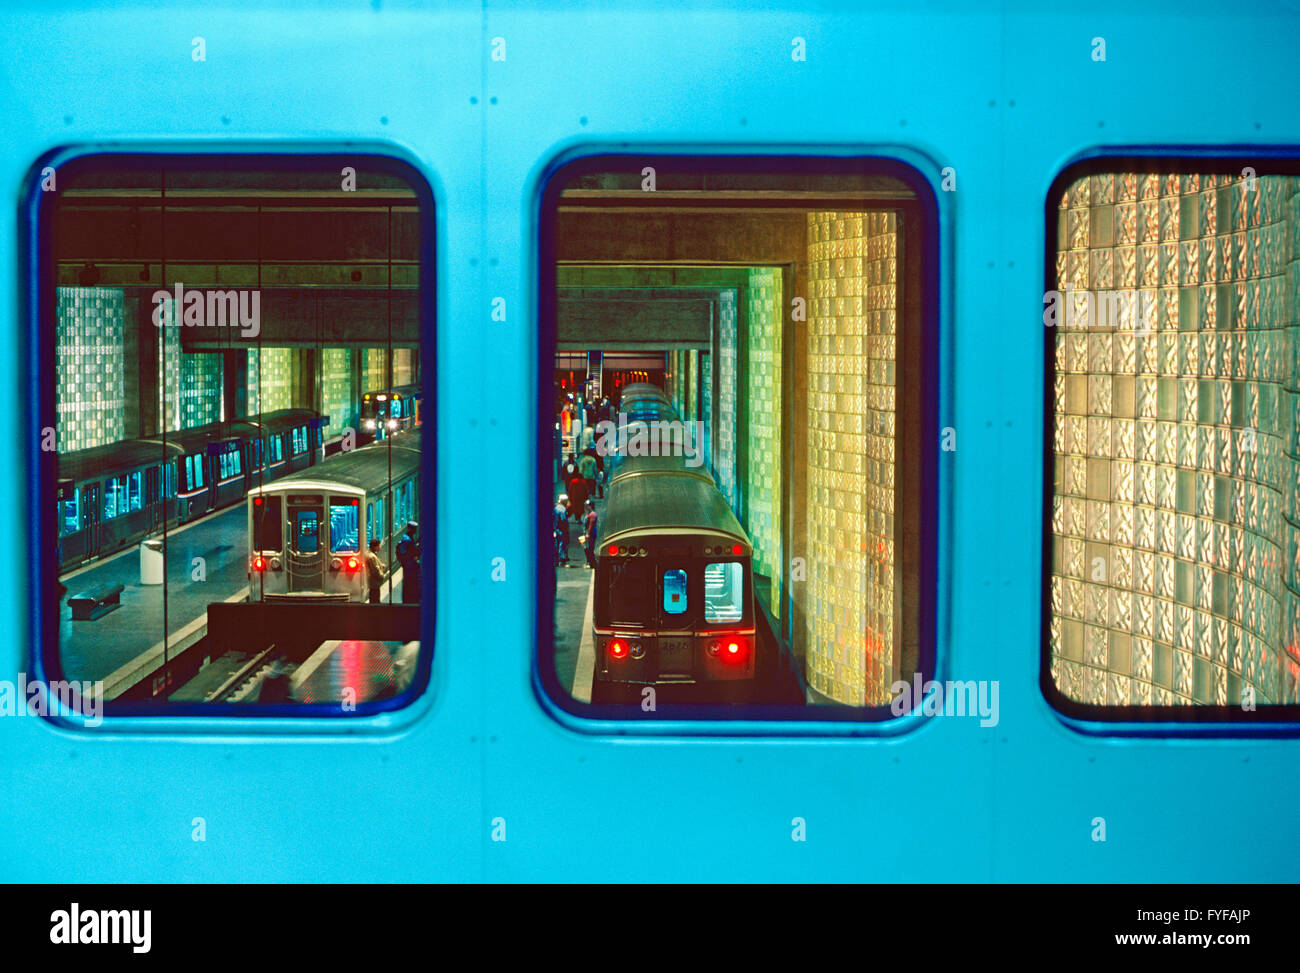 Subway station, train car & block glass walls at Chicago's O'Hare International Airport - Stock Image